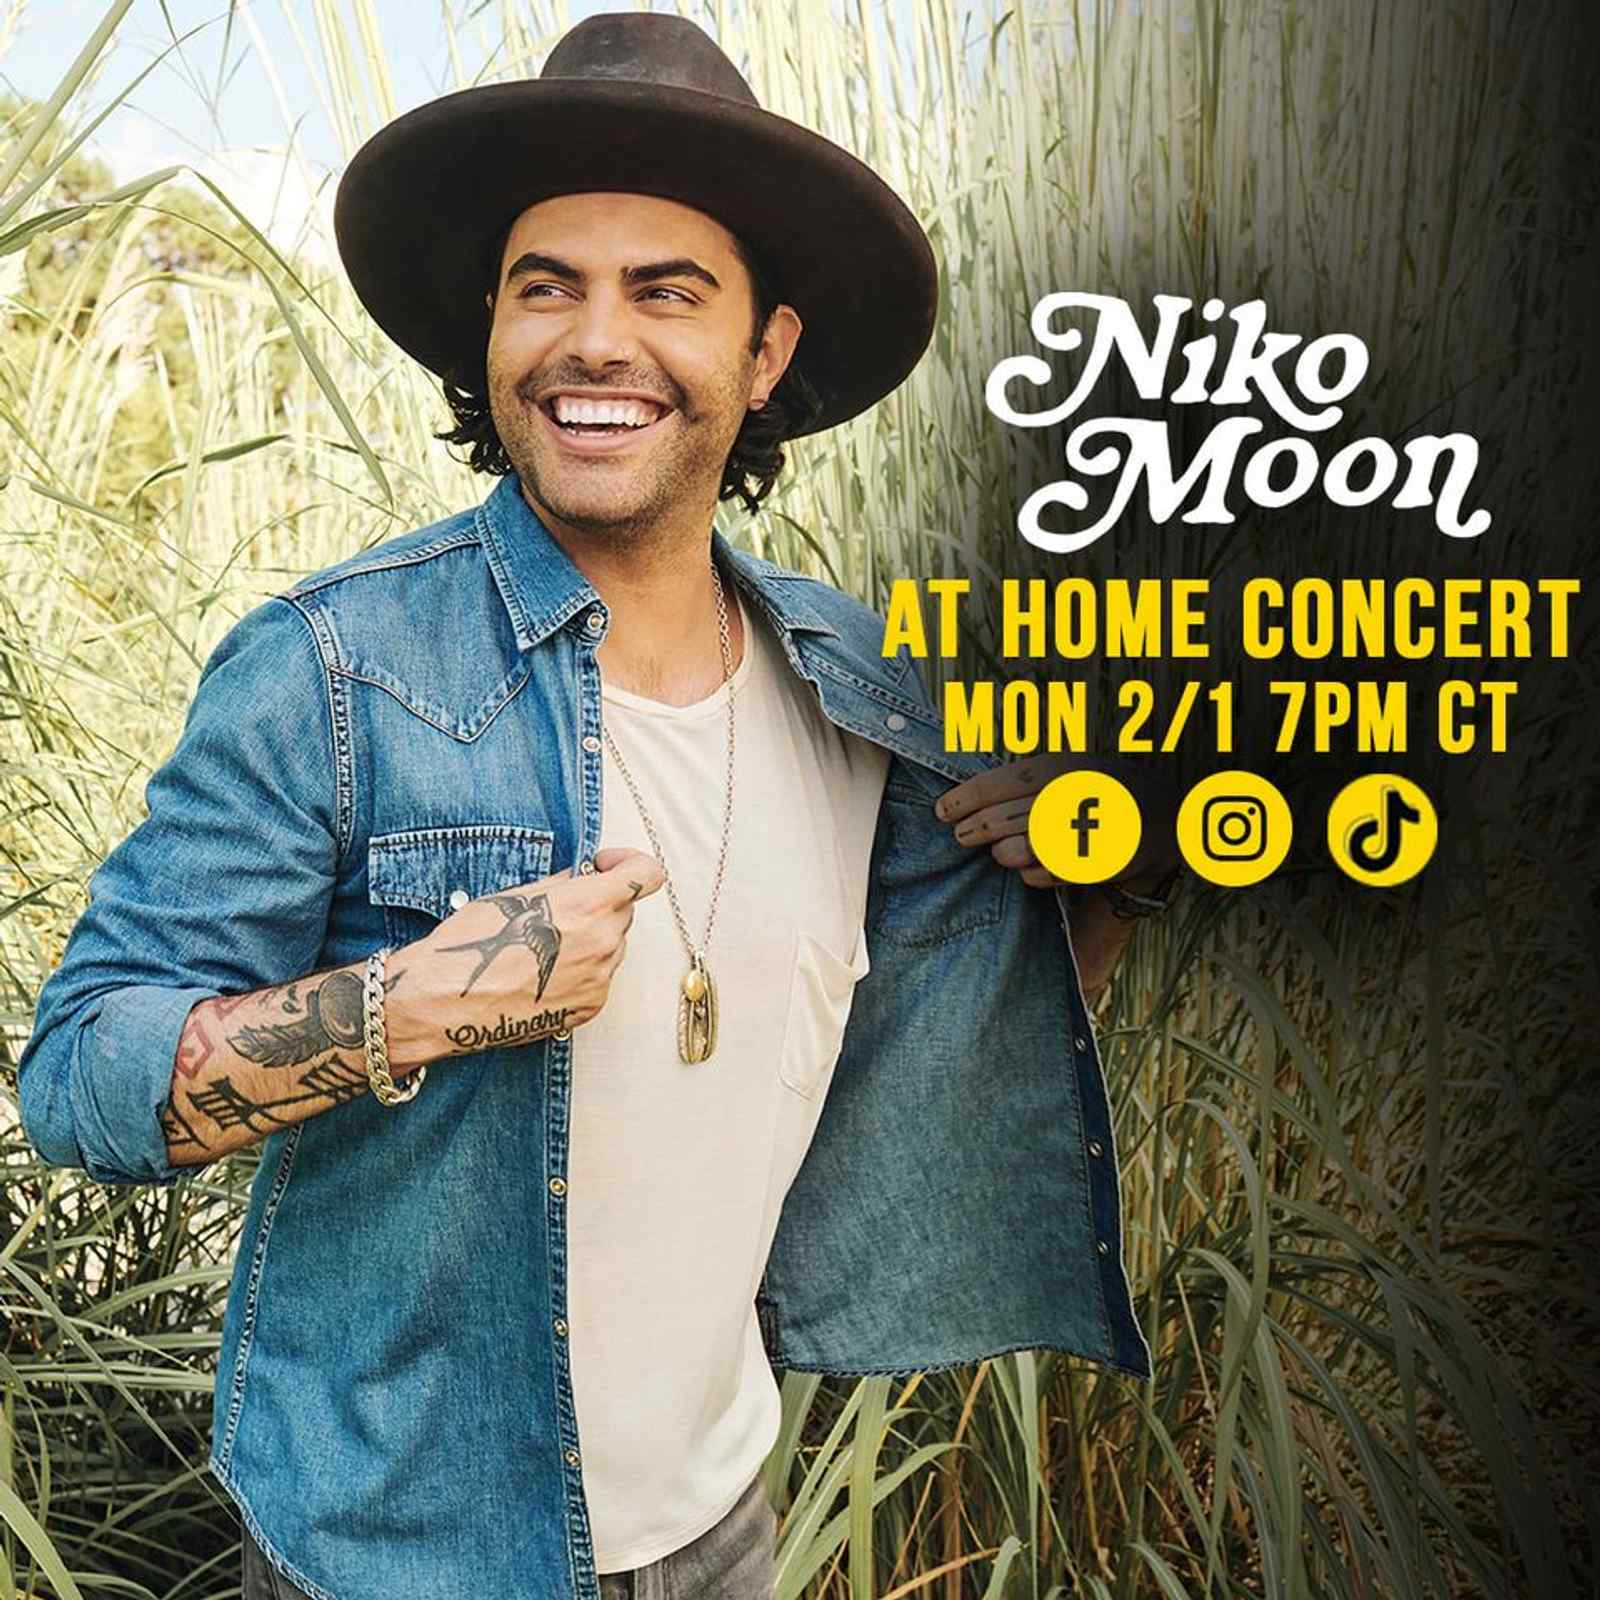 At Home Concert with Niko Moon